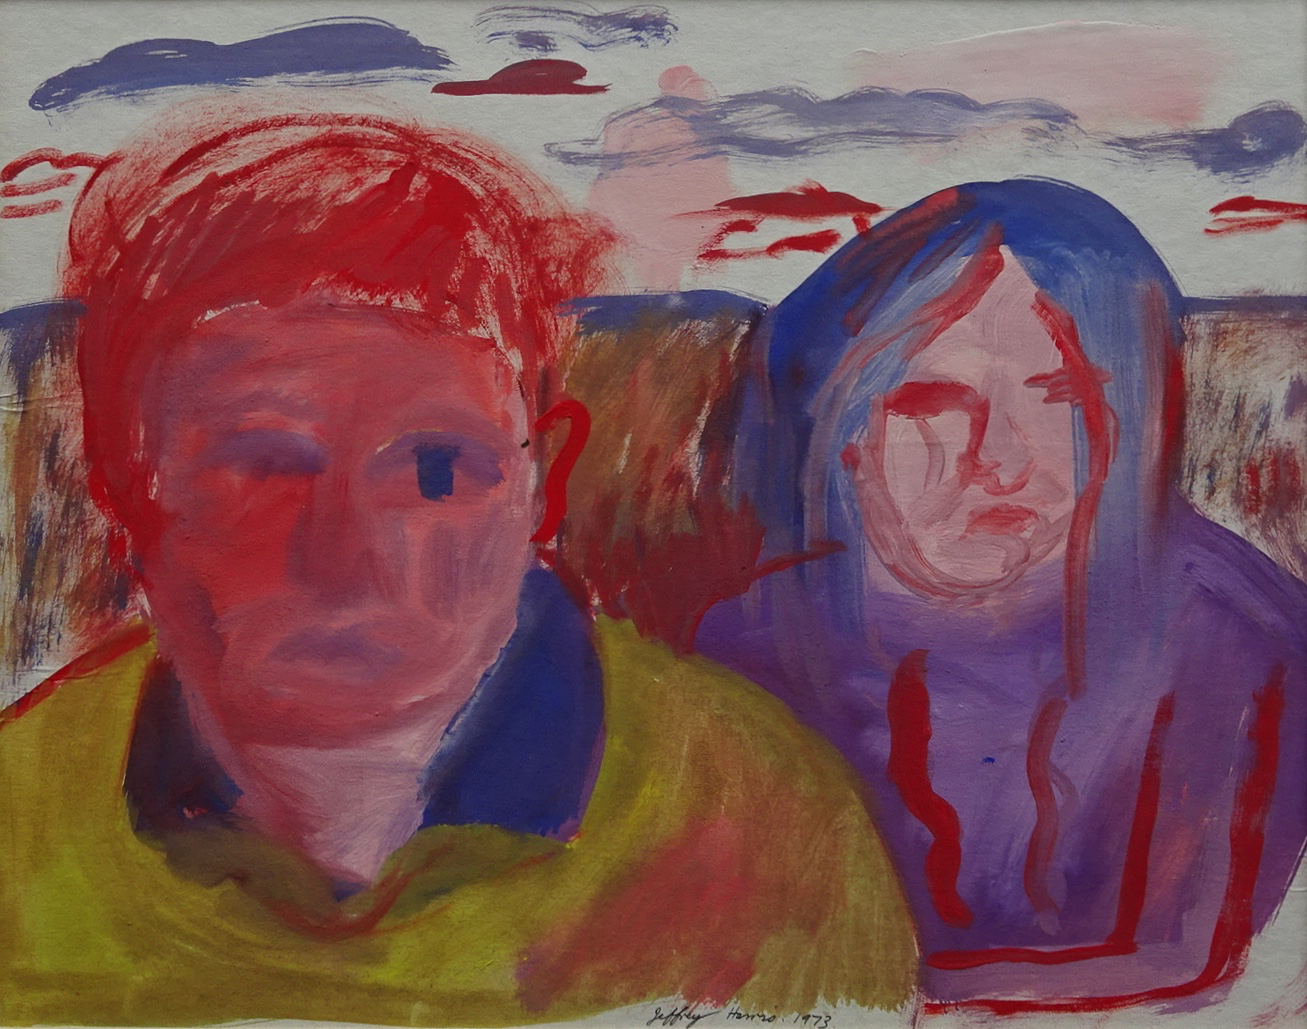 Jeffrey Harris  Two figures in landscape , 1973 Gouache on paper 260 x 330 mm [Private collection]  _____